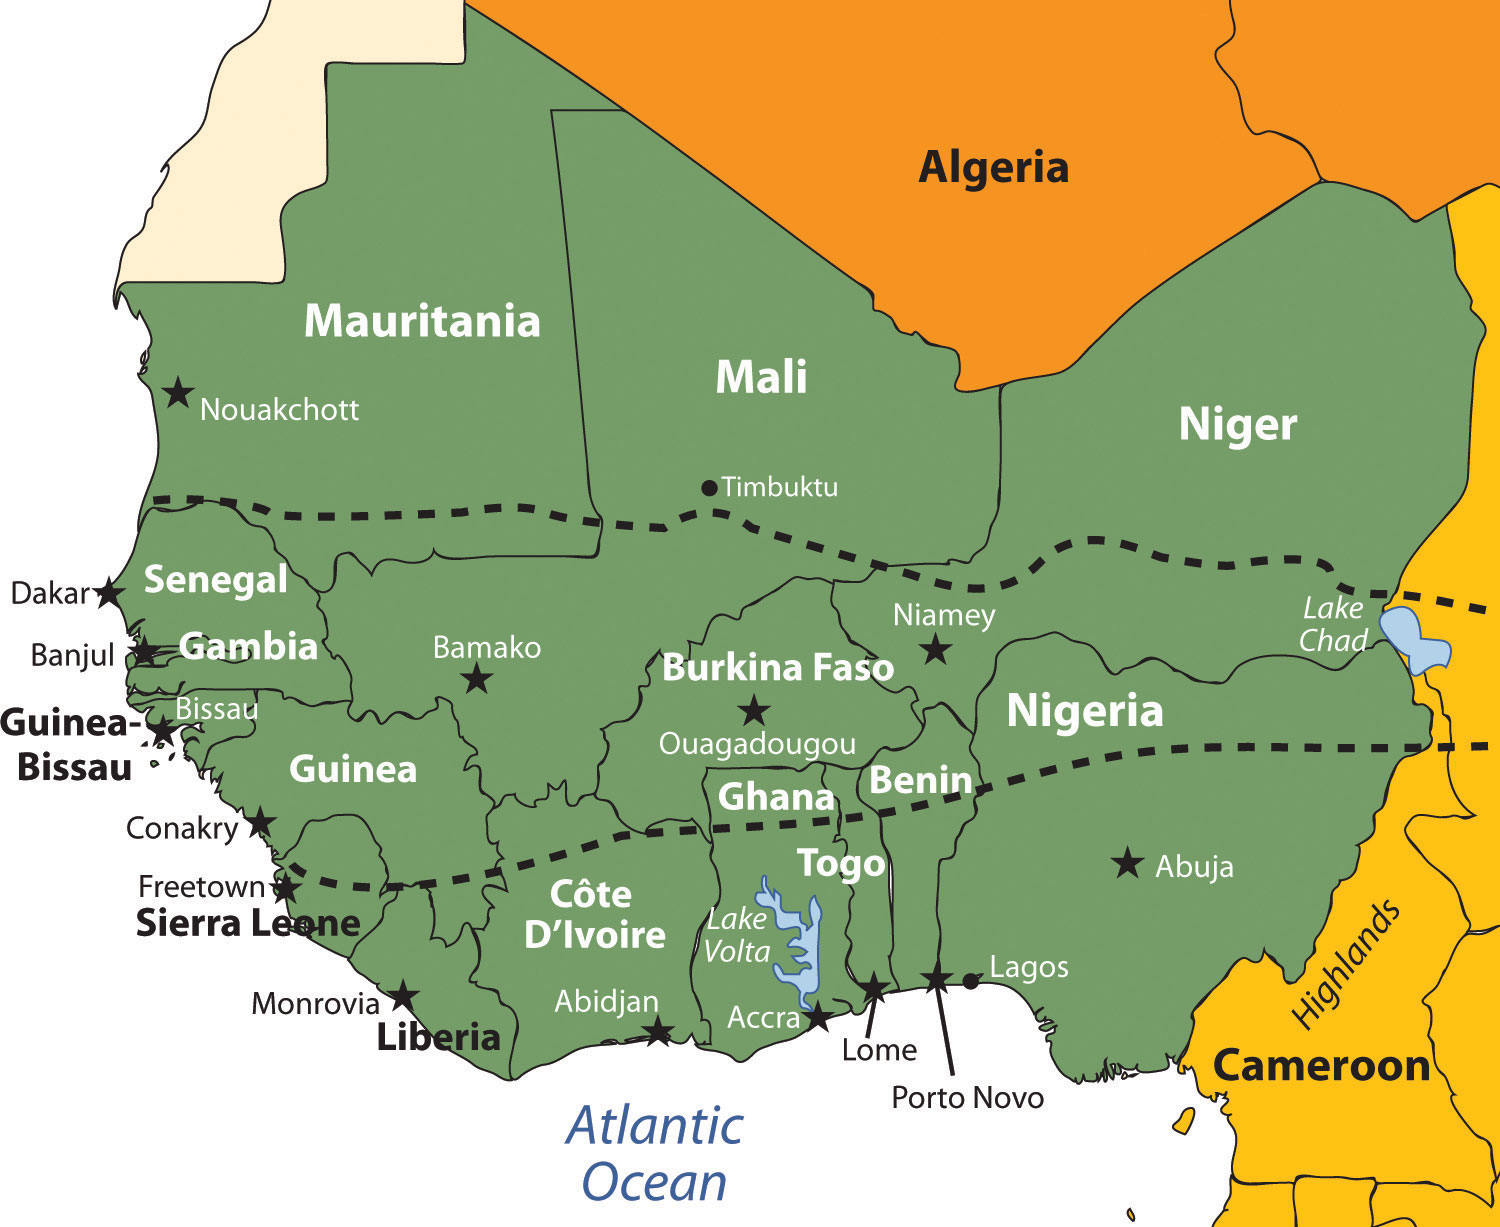 Western Africa Map 7.3 West Africa | World Regional Geography: People, Places and